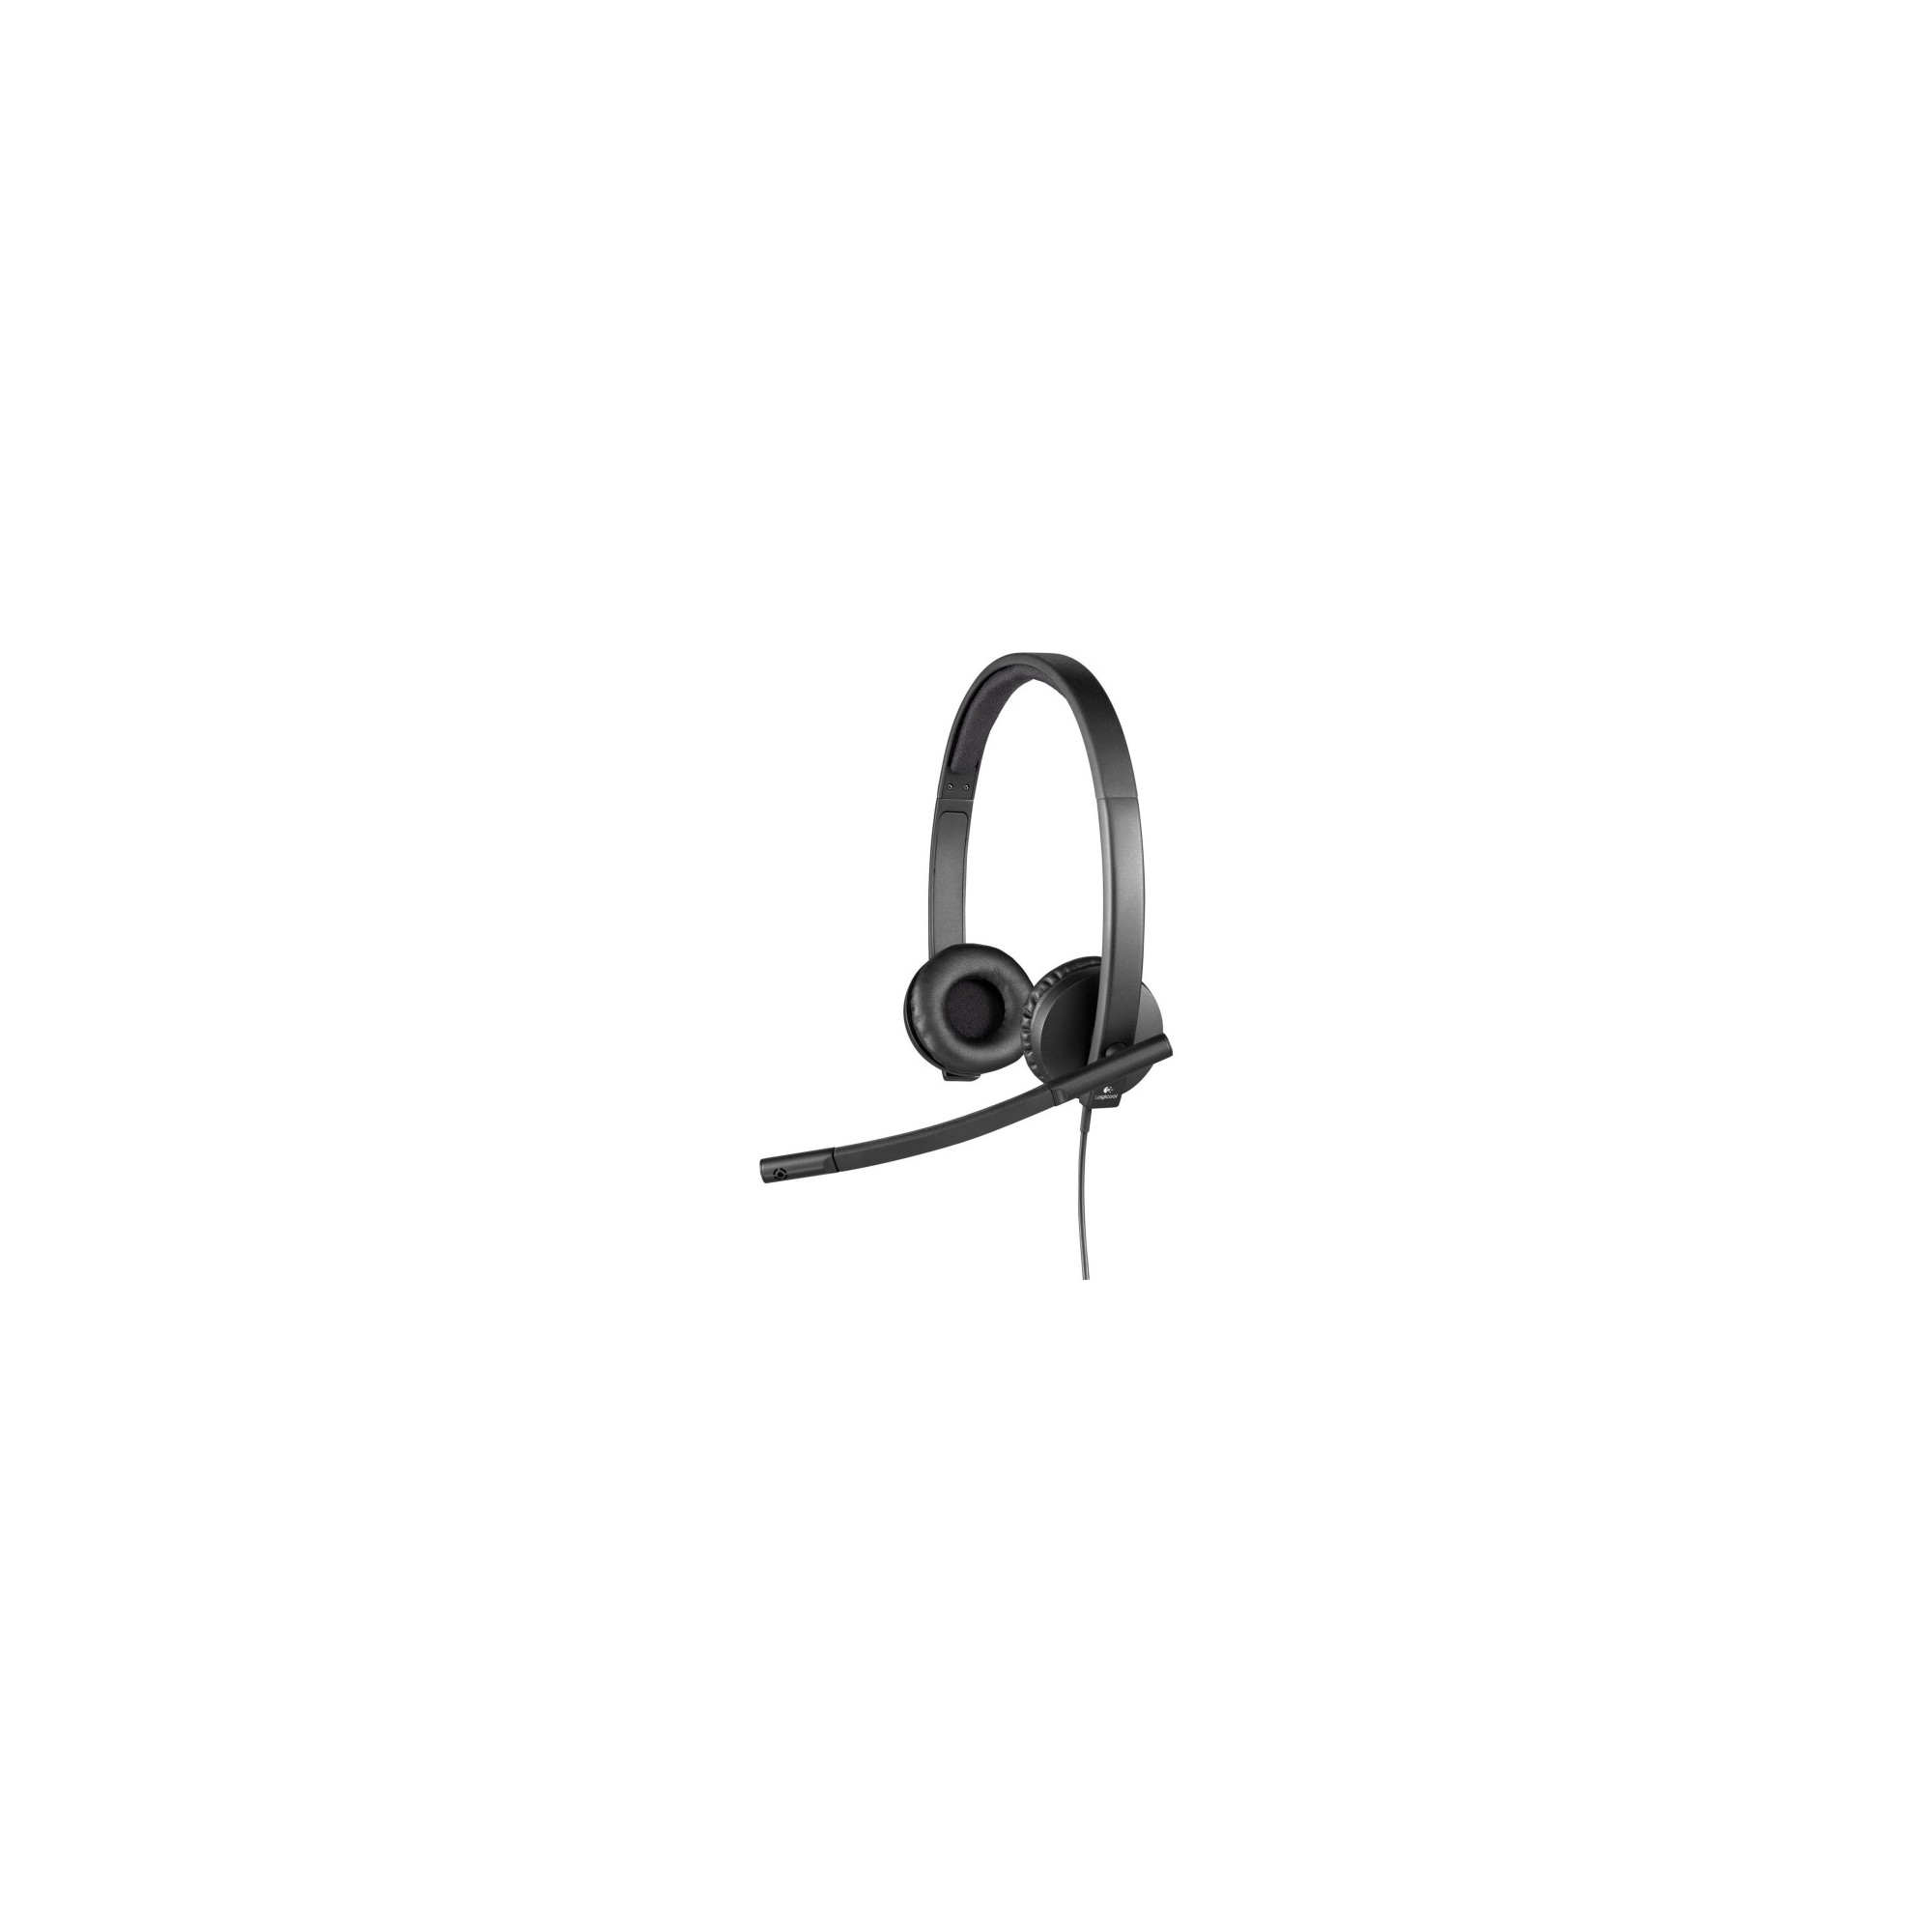 c9d1c2e5718 Logitech Usb Headset Stereo H650e - Stereo - Usb - Wired - 50 Hz - 10 kHz -  Over-the-head - Binaural - Supra-aural - Noise Cancelling Microphone